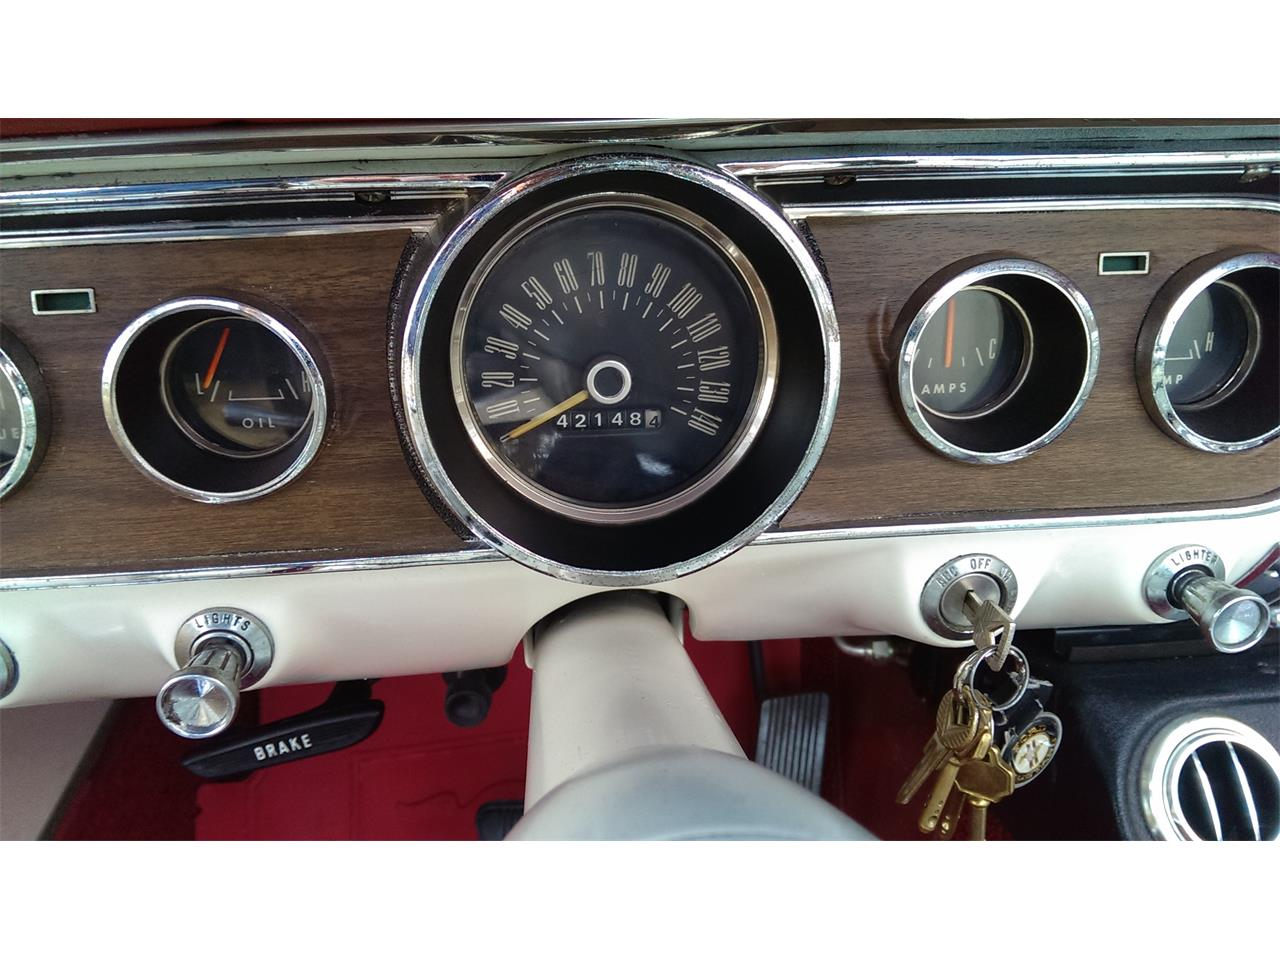 Large Picture of '65 Ford Mustang located in North Carolina - $35,000.00 Offered by a Private Seller - D1TR